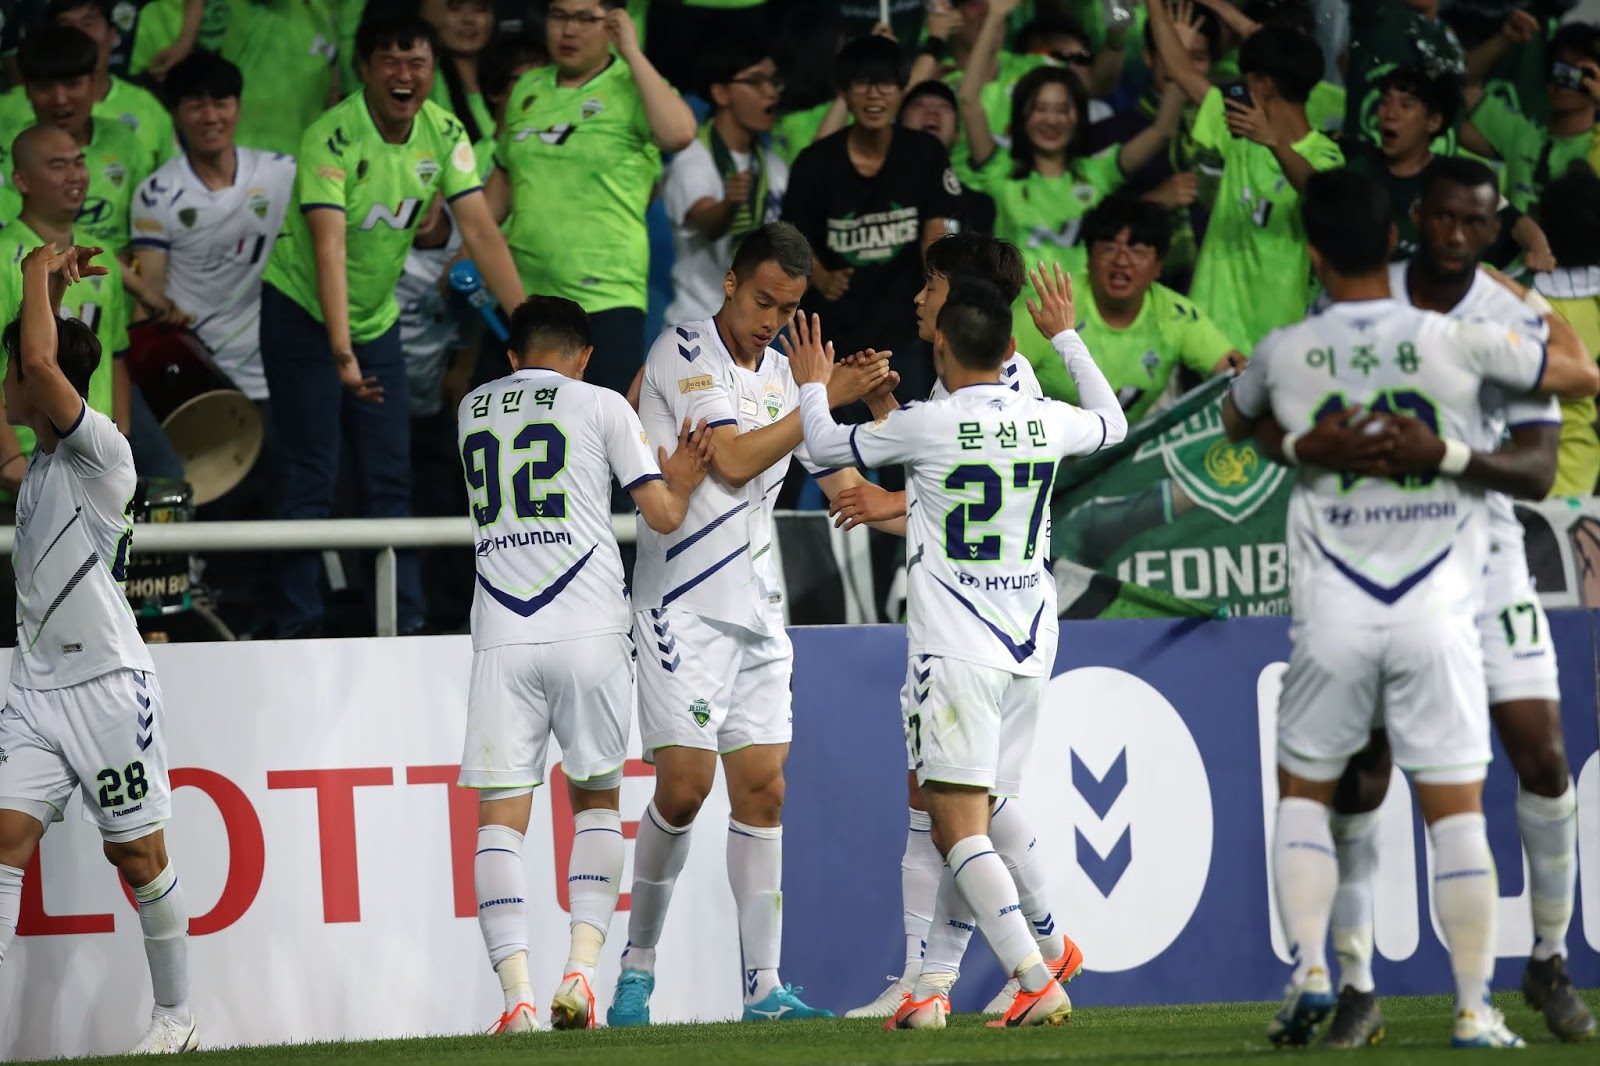 K League 1 Preview: Pohang Steelers vs Jeonbuk Hyundai Motors